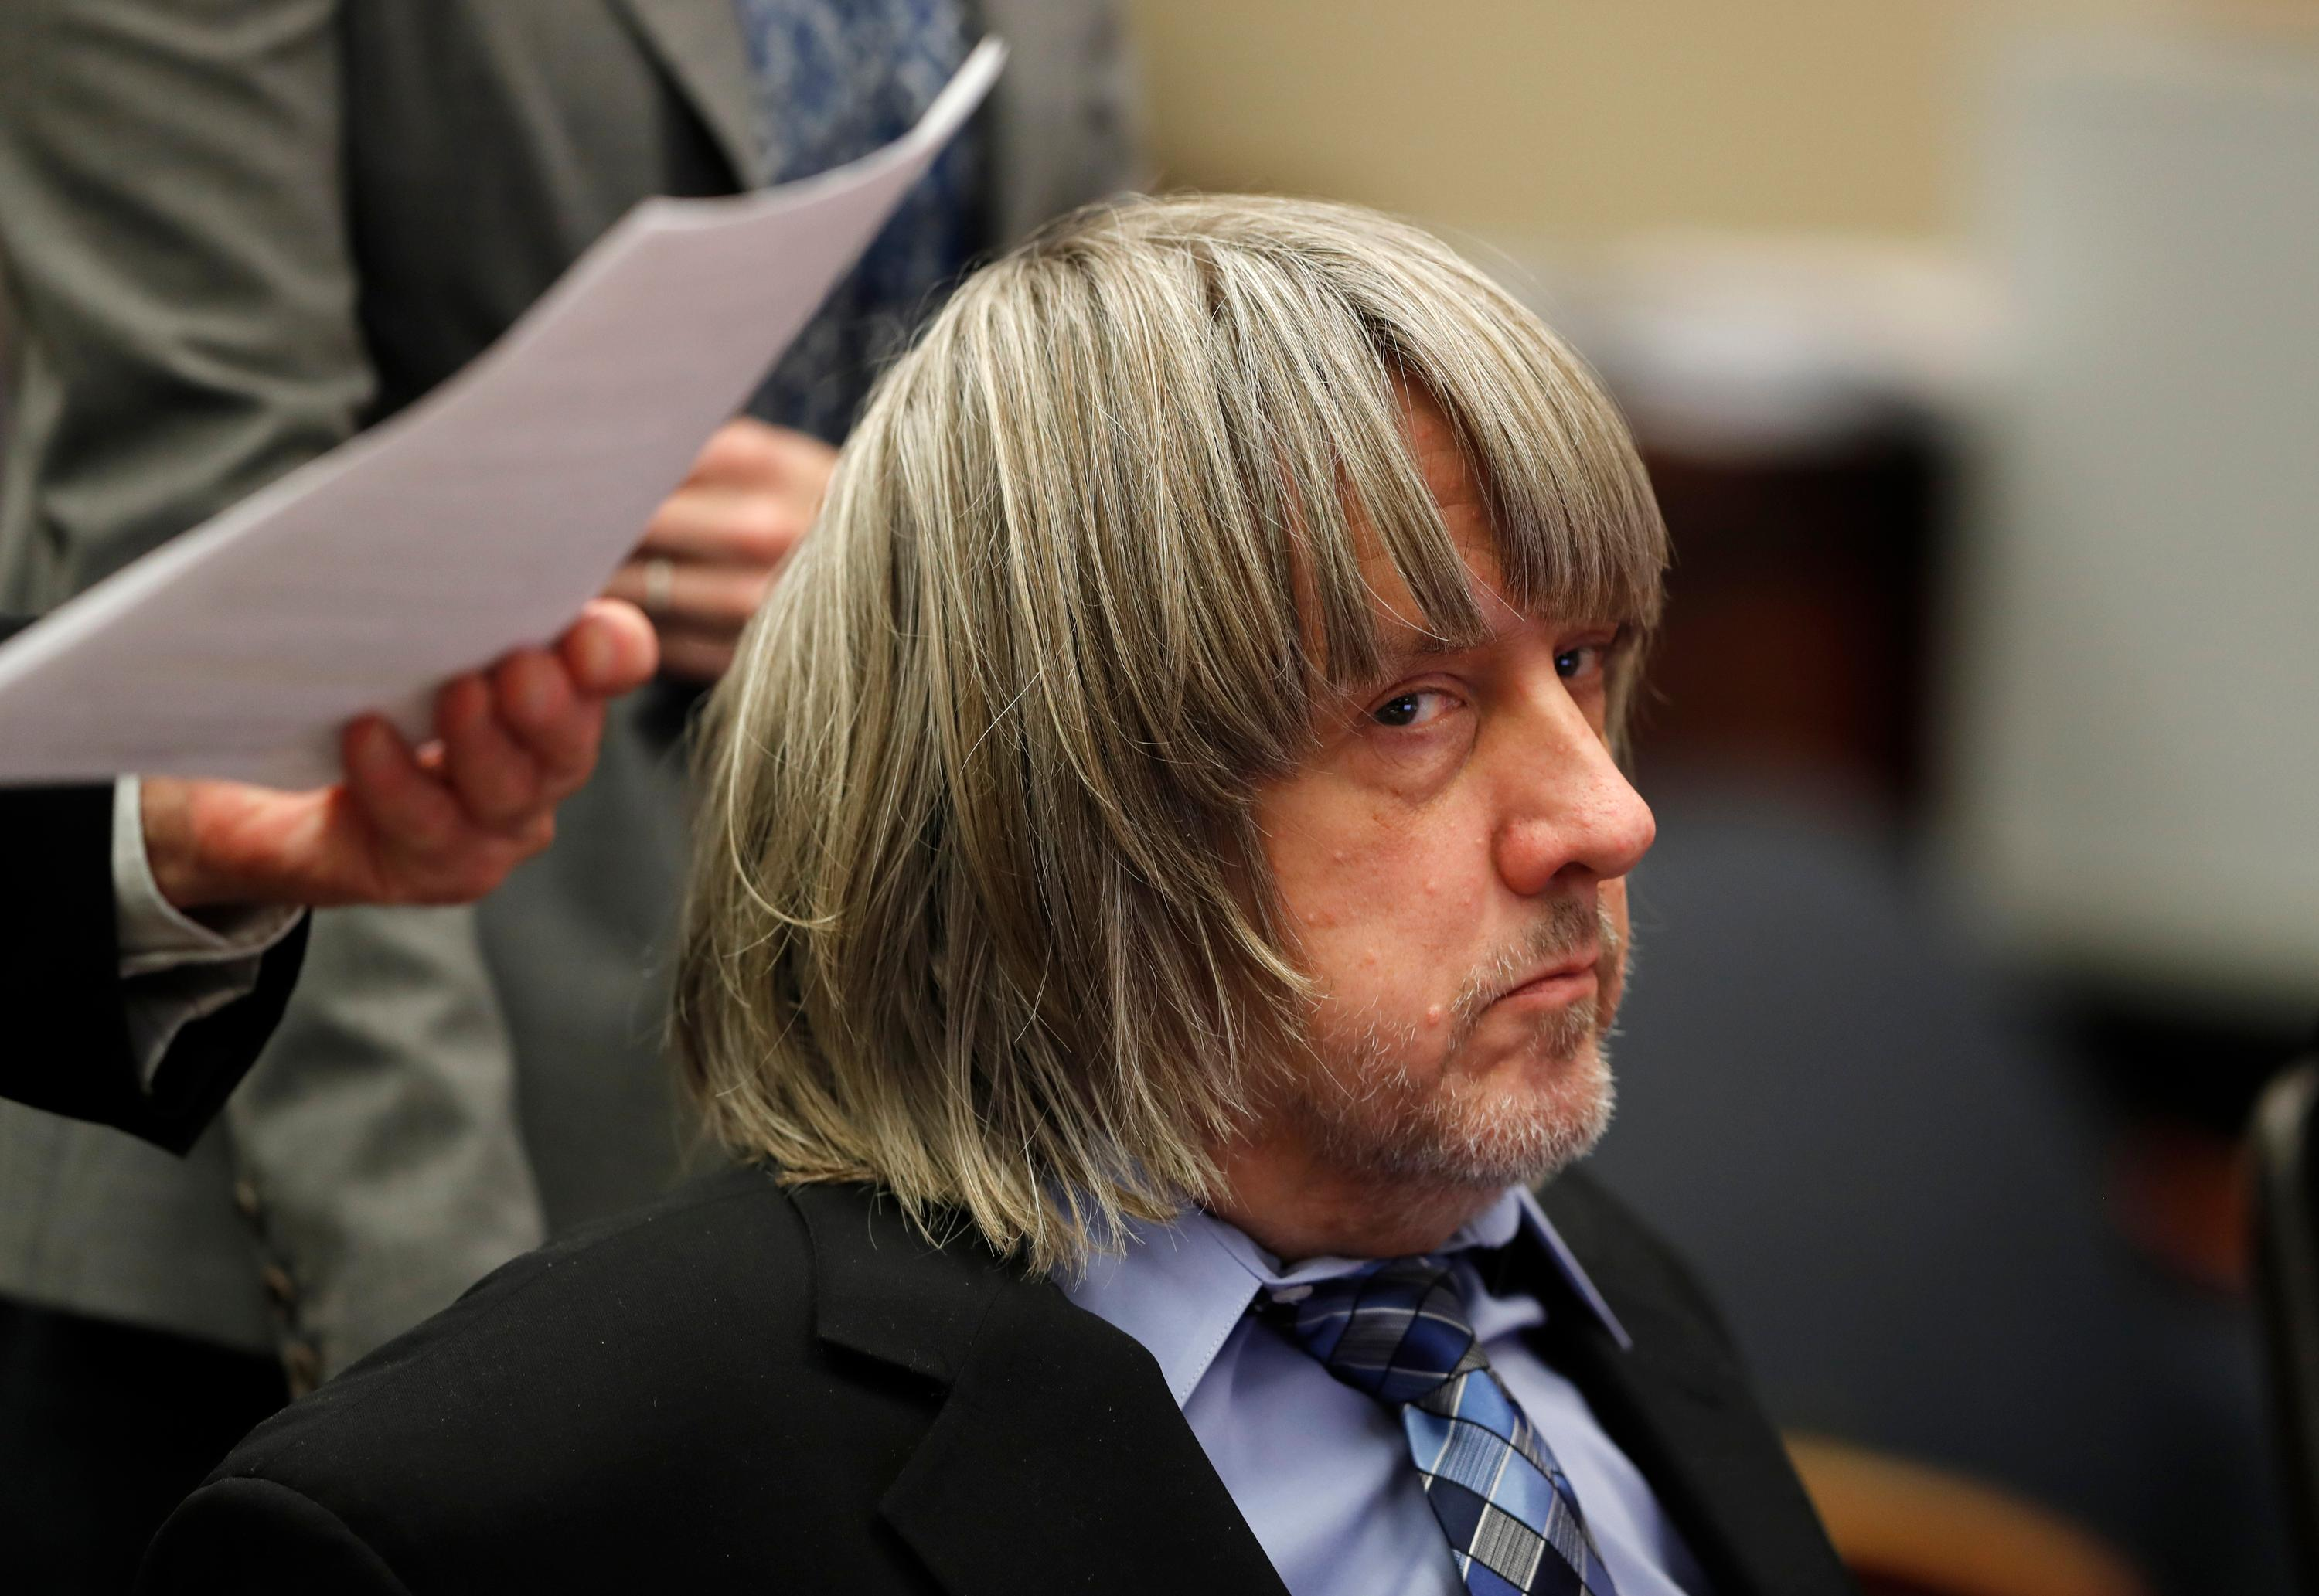 FILE - In this Jan. 24, 2018 file photo, David Turpin appears in court in Riverside, Calif. David and Louse Turpin, who are charged with torturing their children by starving, beating and shackling them, are scheduled to appear Friday, Feb. 23, 2018, in a Riverside courtroom for a conference about their case. (Mike Blake/Pool Photo via AP, File)